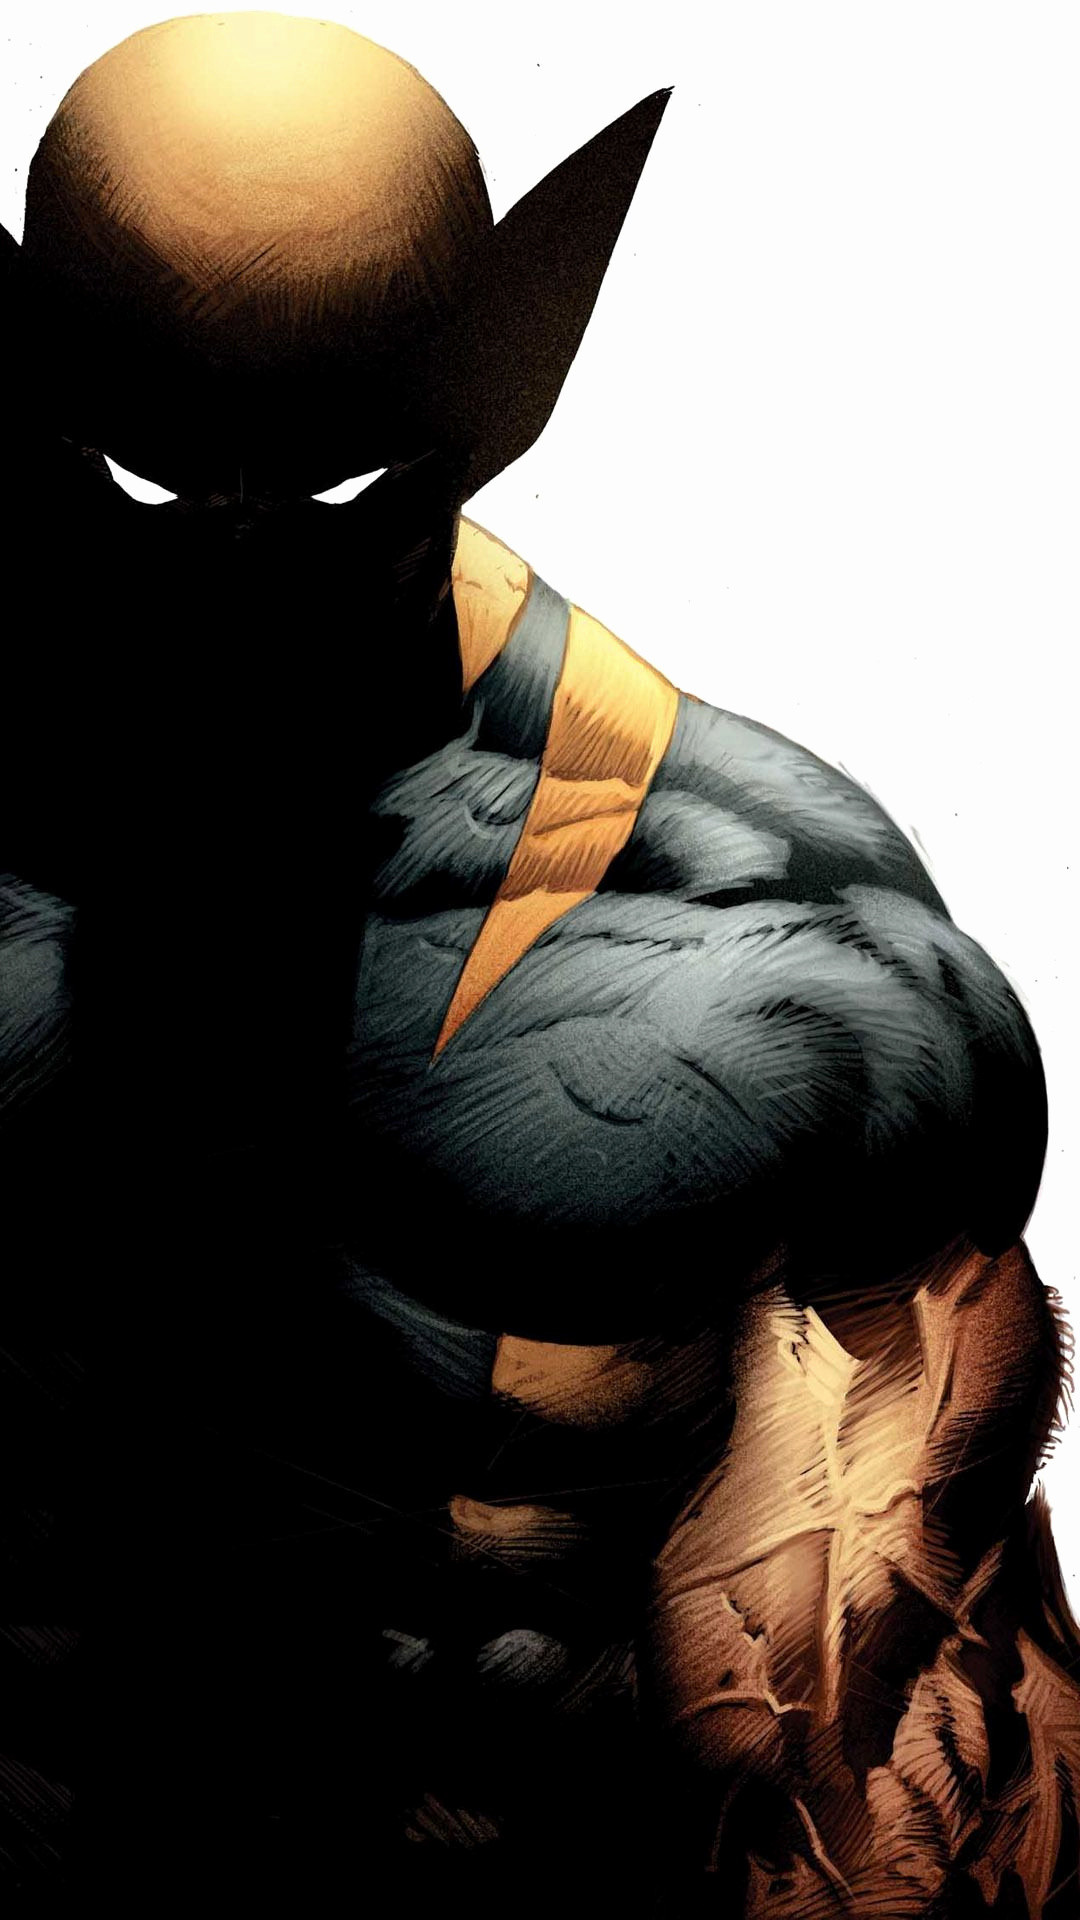 Res: 1080x1920, Wolverine Wallpaper Awesome Wolverine Mobile Wallpaper Heroes Pinterest